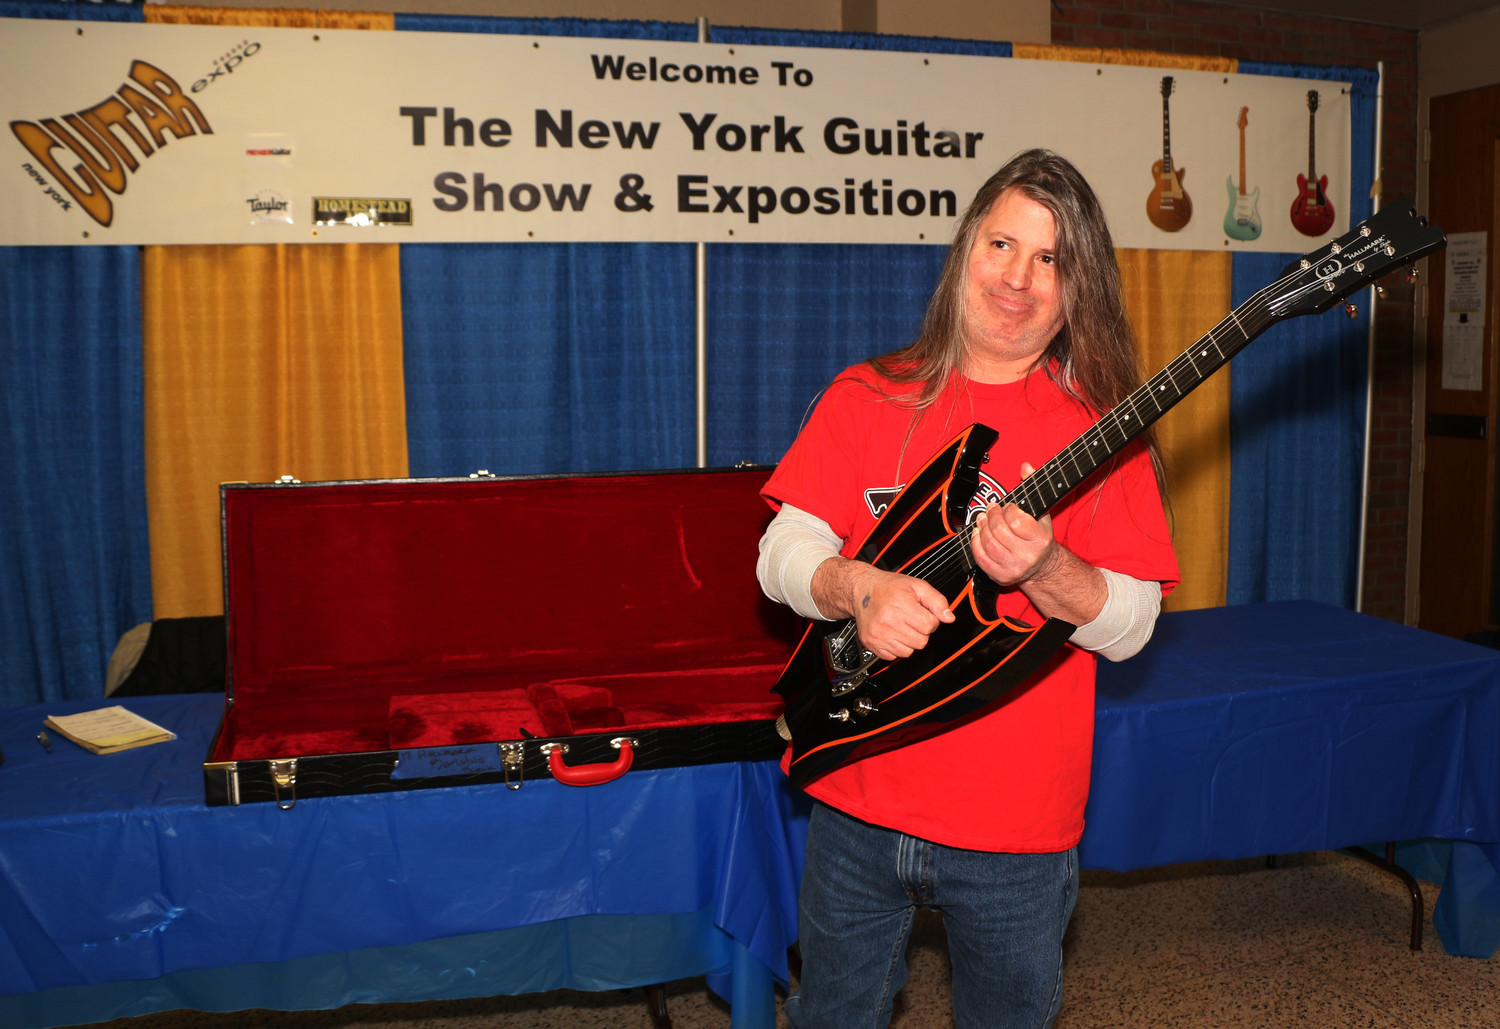 oe Loschiavo played his Hallmark Batman Guitar during the Guitar Expo in Freeport on Sunday.